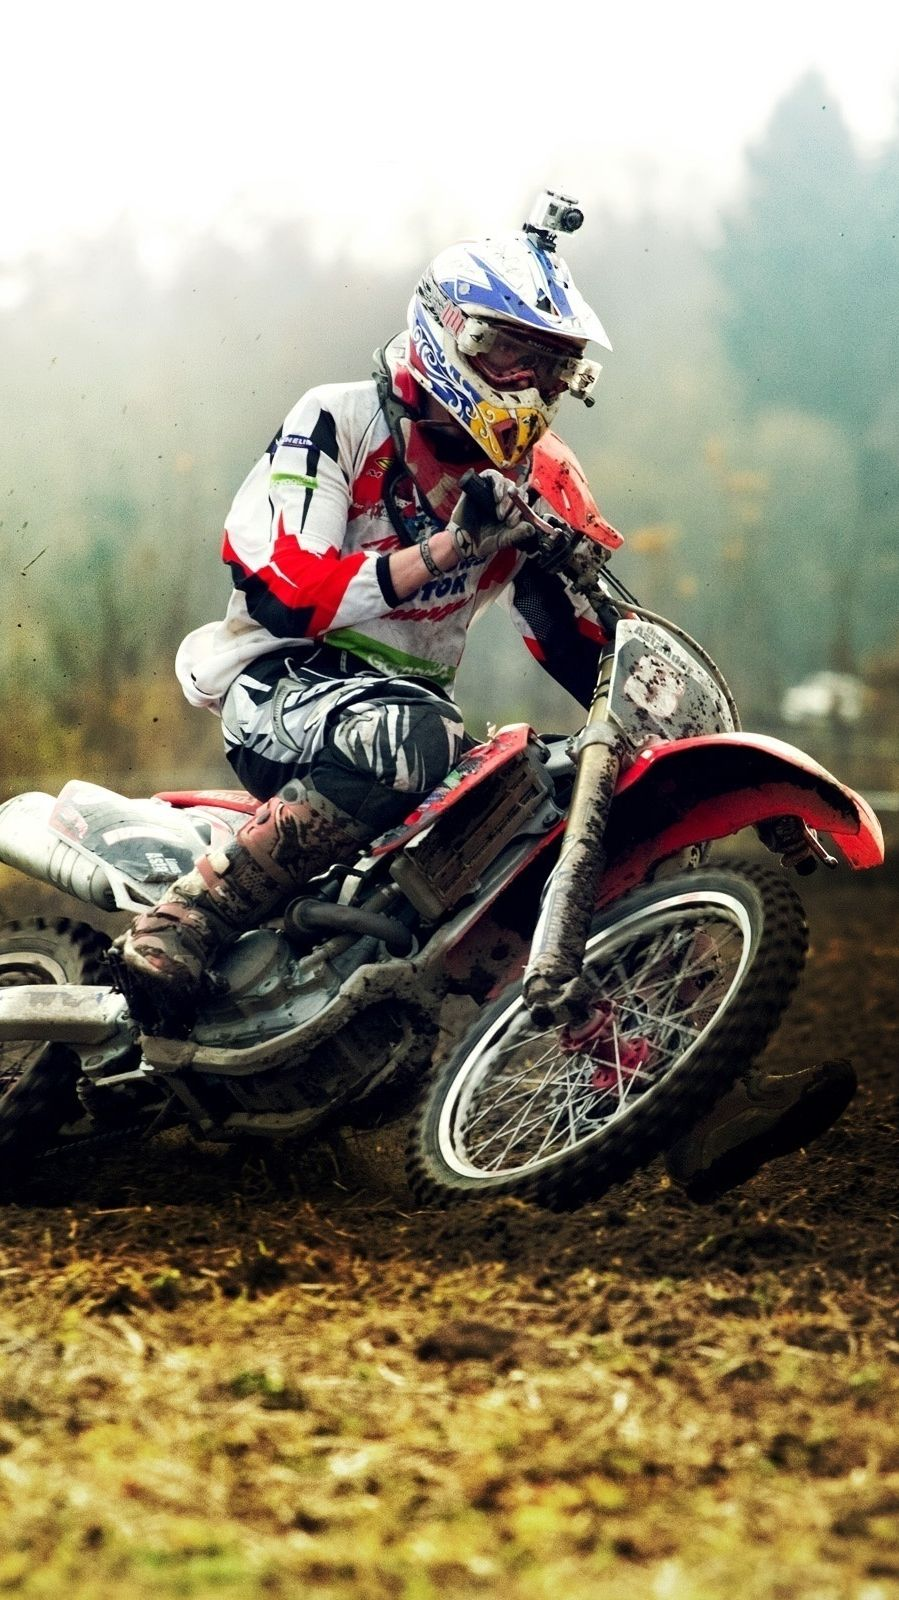 Mud Motocross Iphone Wallpaper Motocross Wallpaper 4k